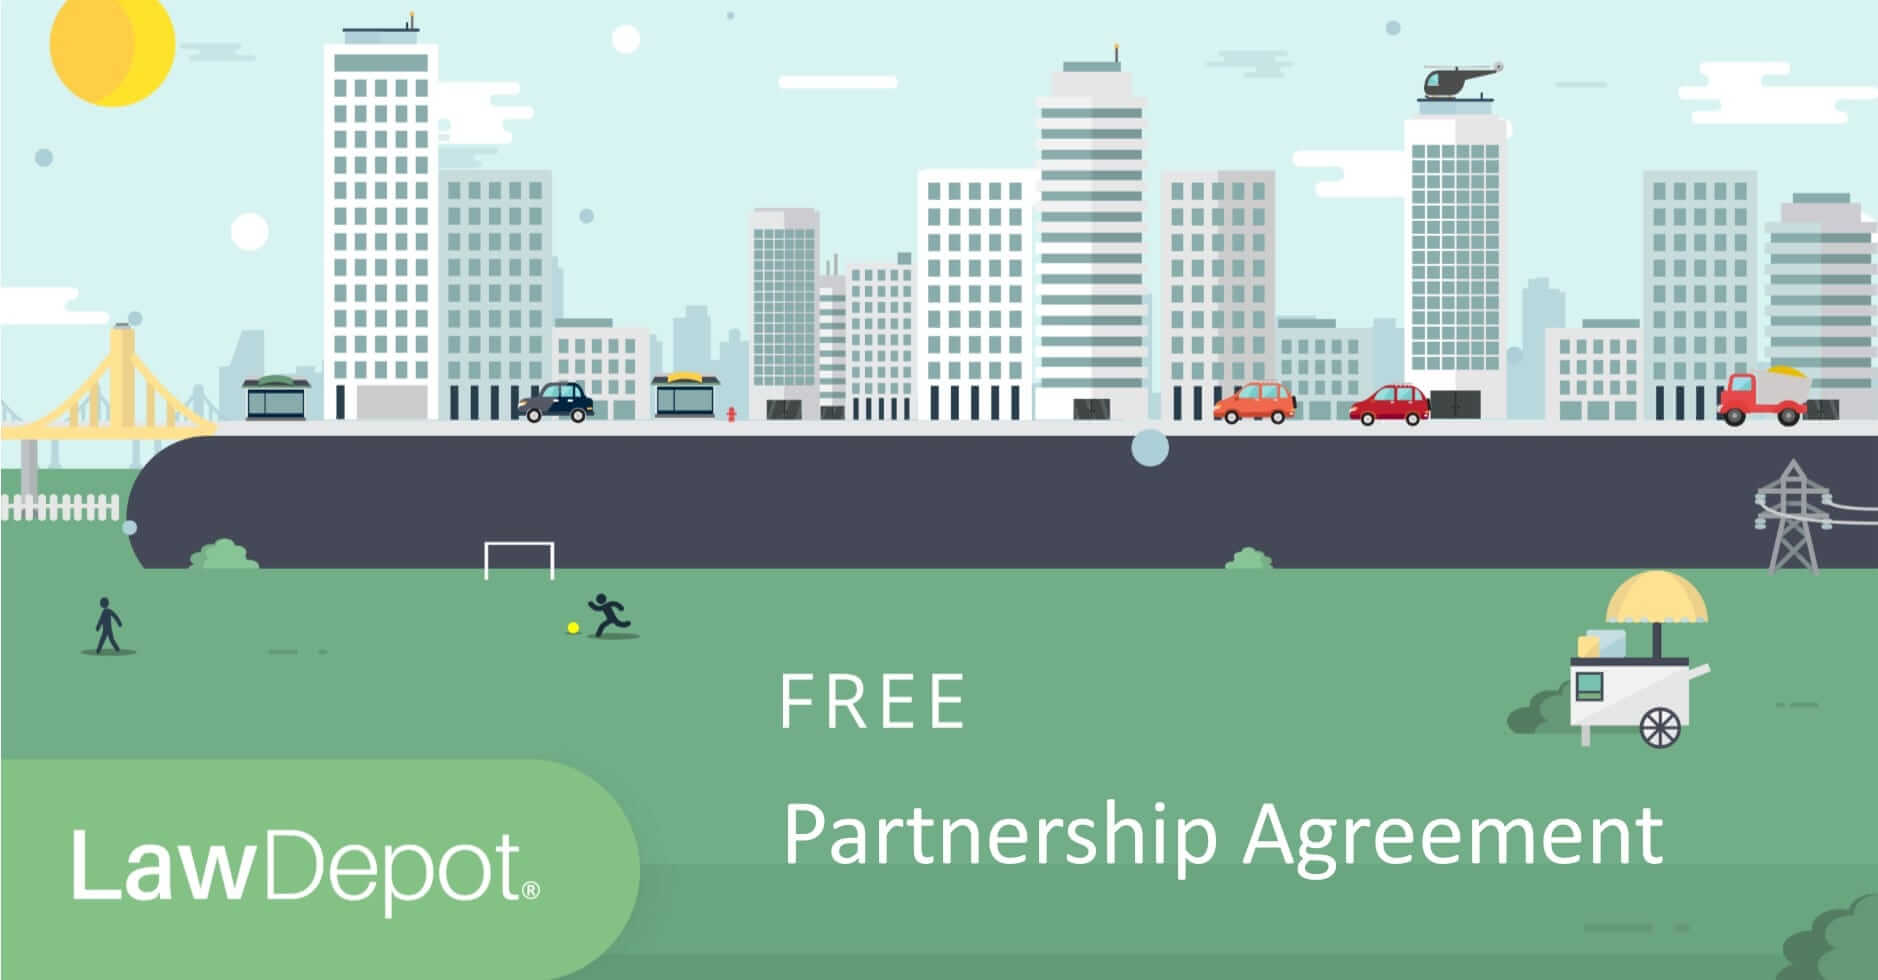 This partnership agreement serves only as a template. Free Partnership Agreement Create Download And Print Lawdepot Us